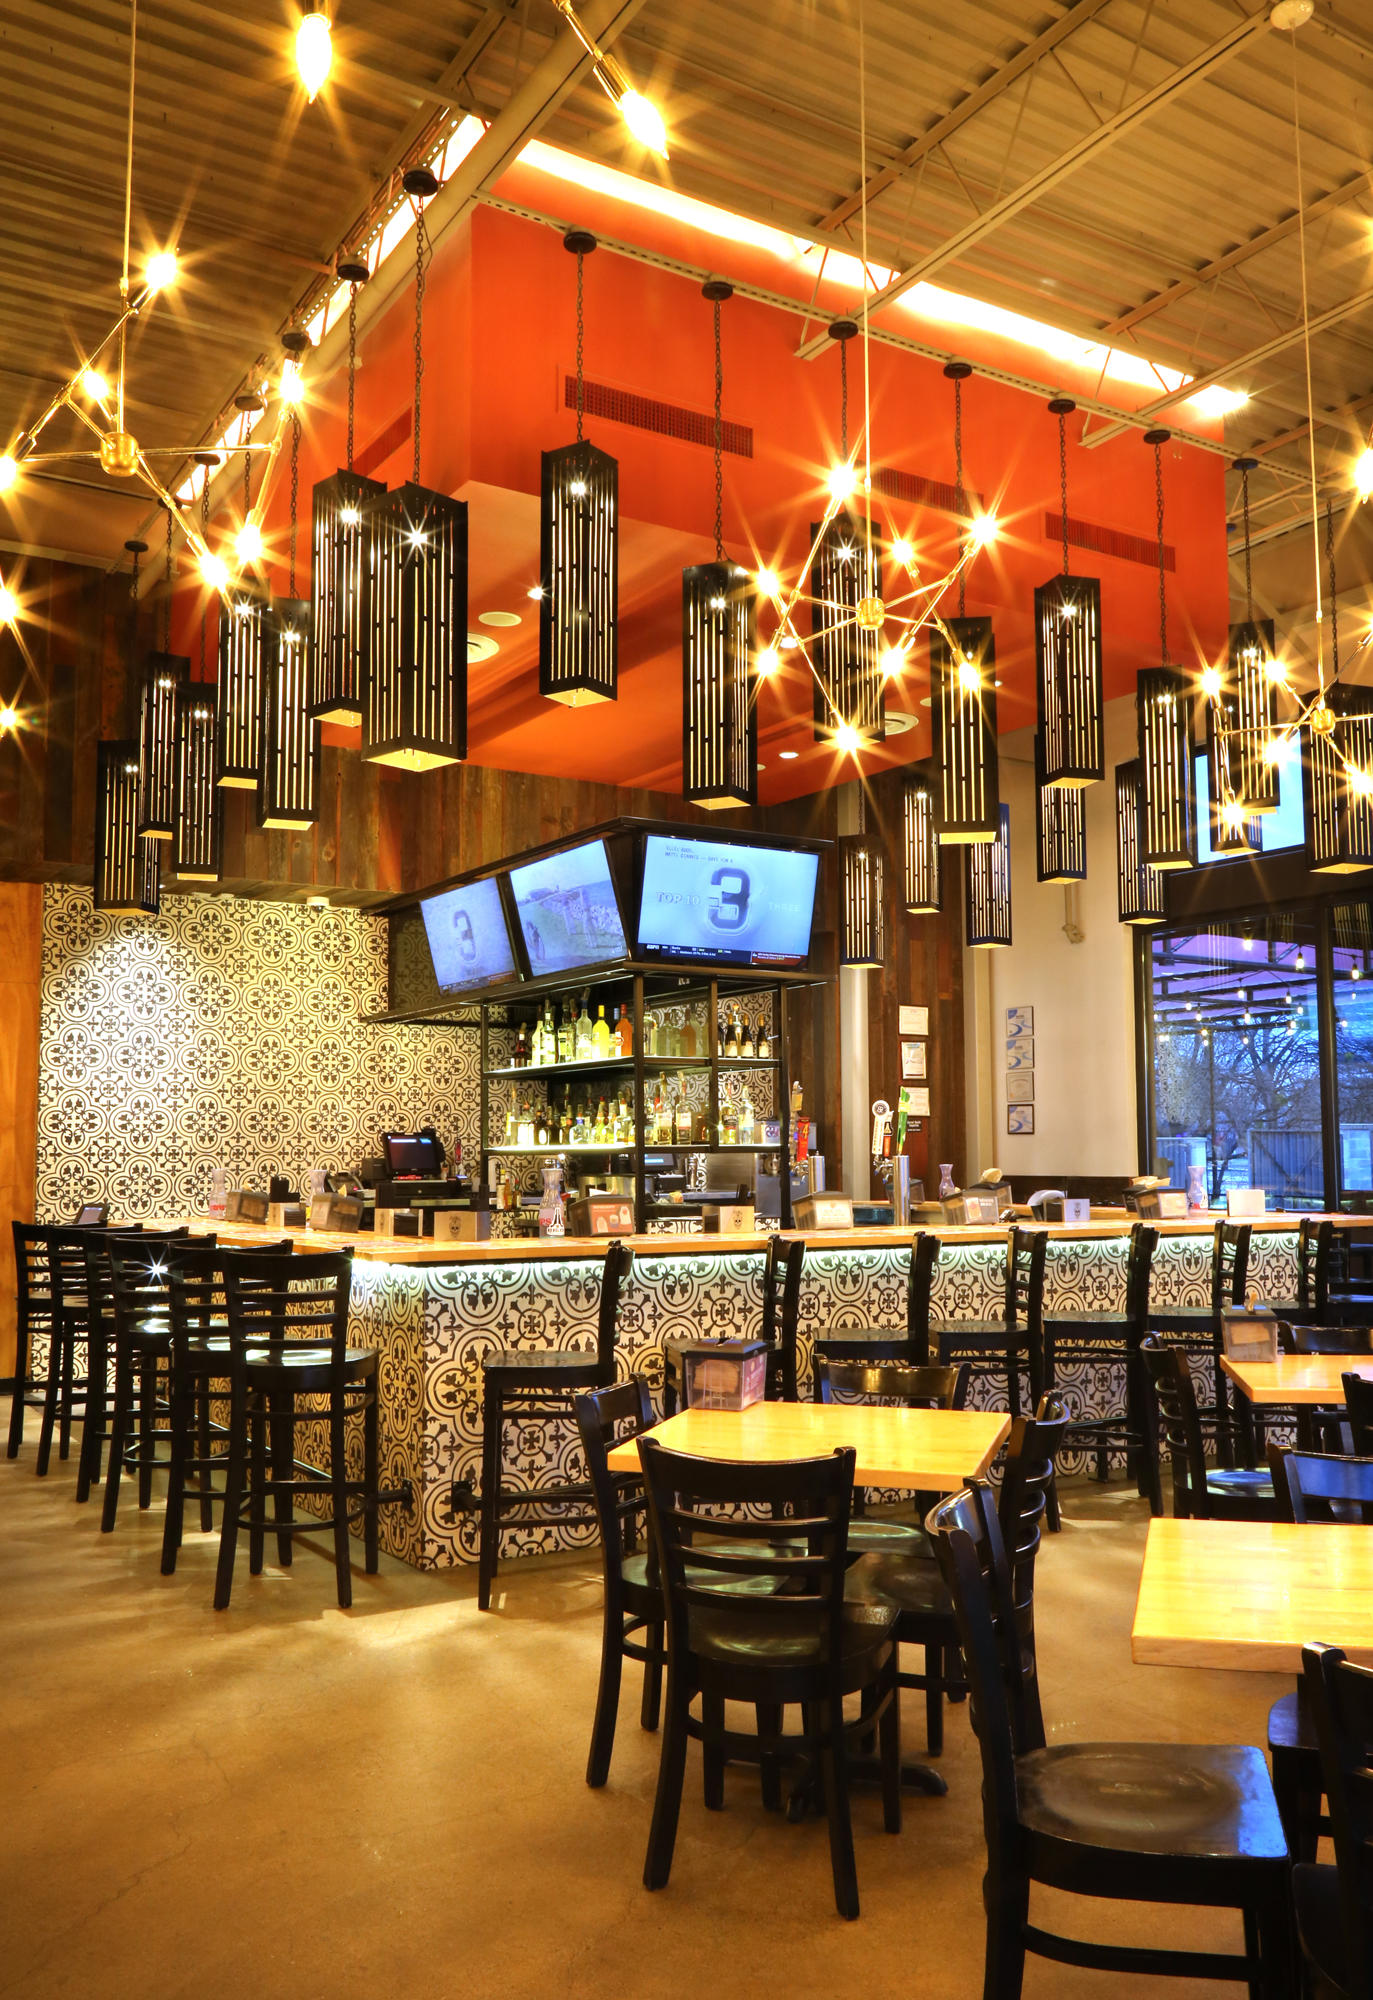 Torchy's Tacos image 10